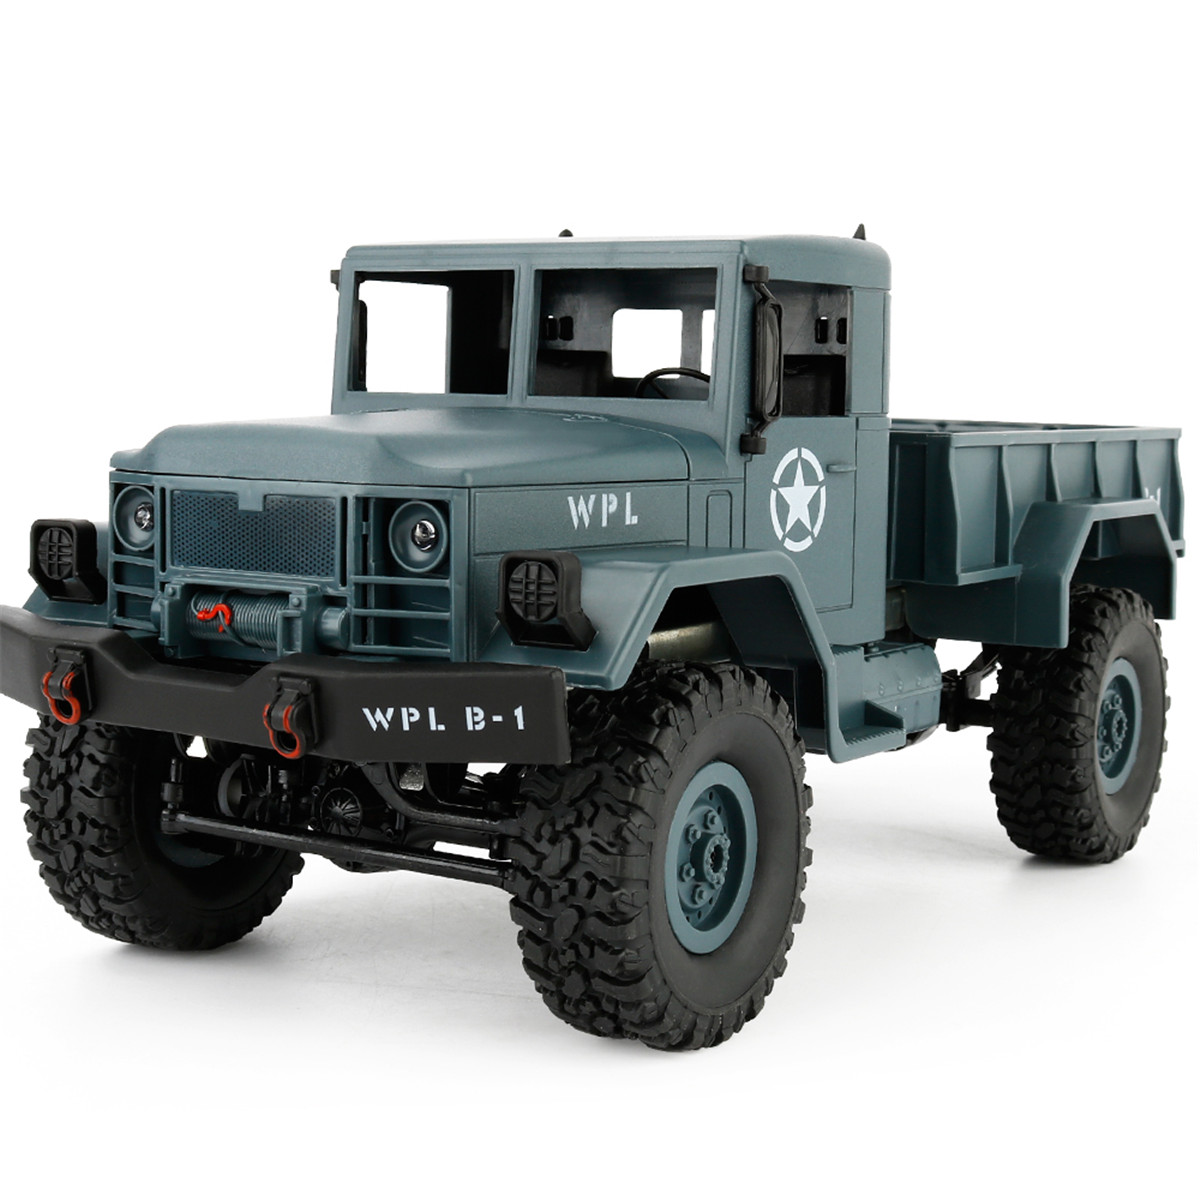 DIY WPL B-1 1:16 4WD RC Military Truck Buggy Crawler Off Road Car 2CH RTR Toy